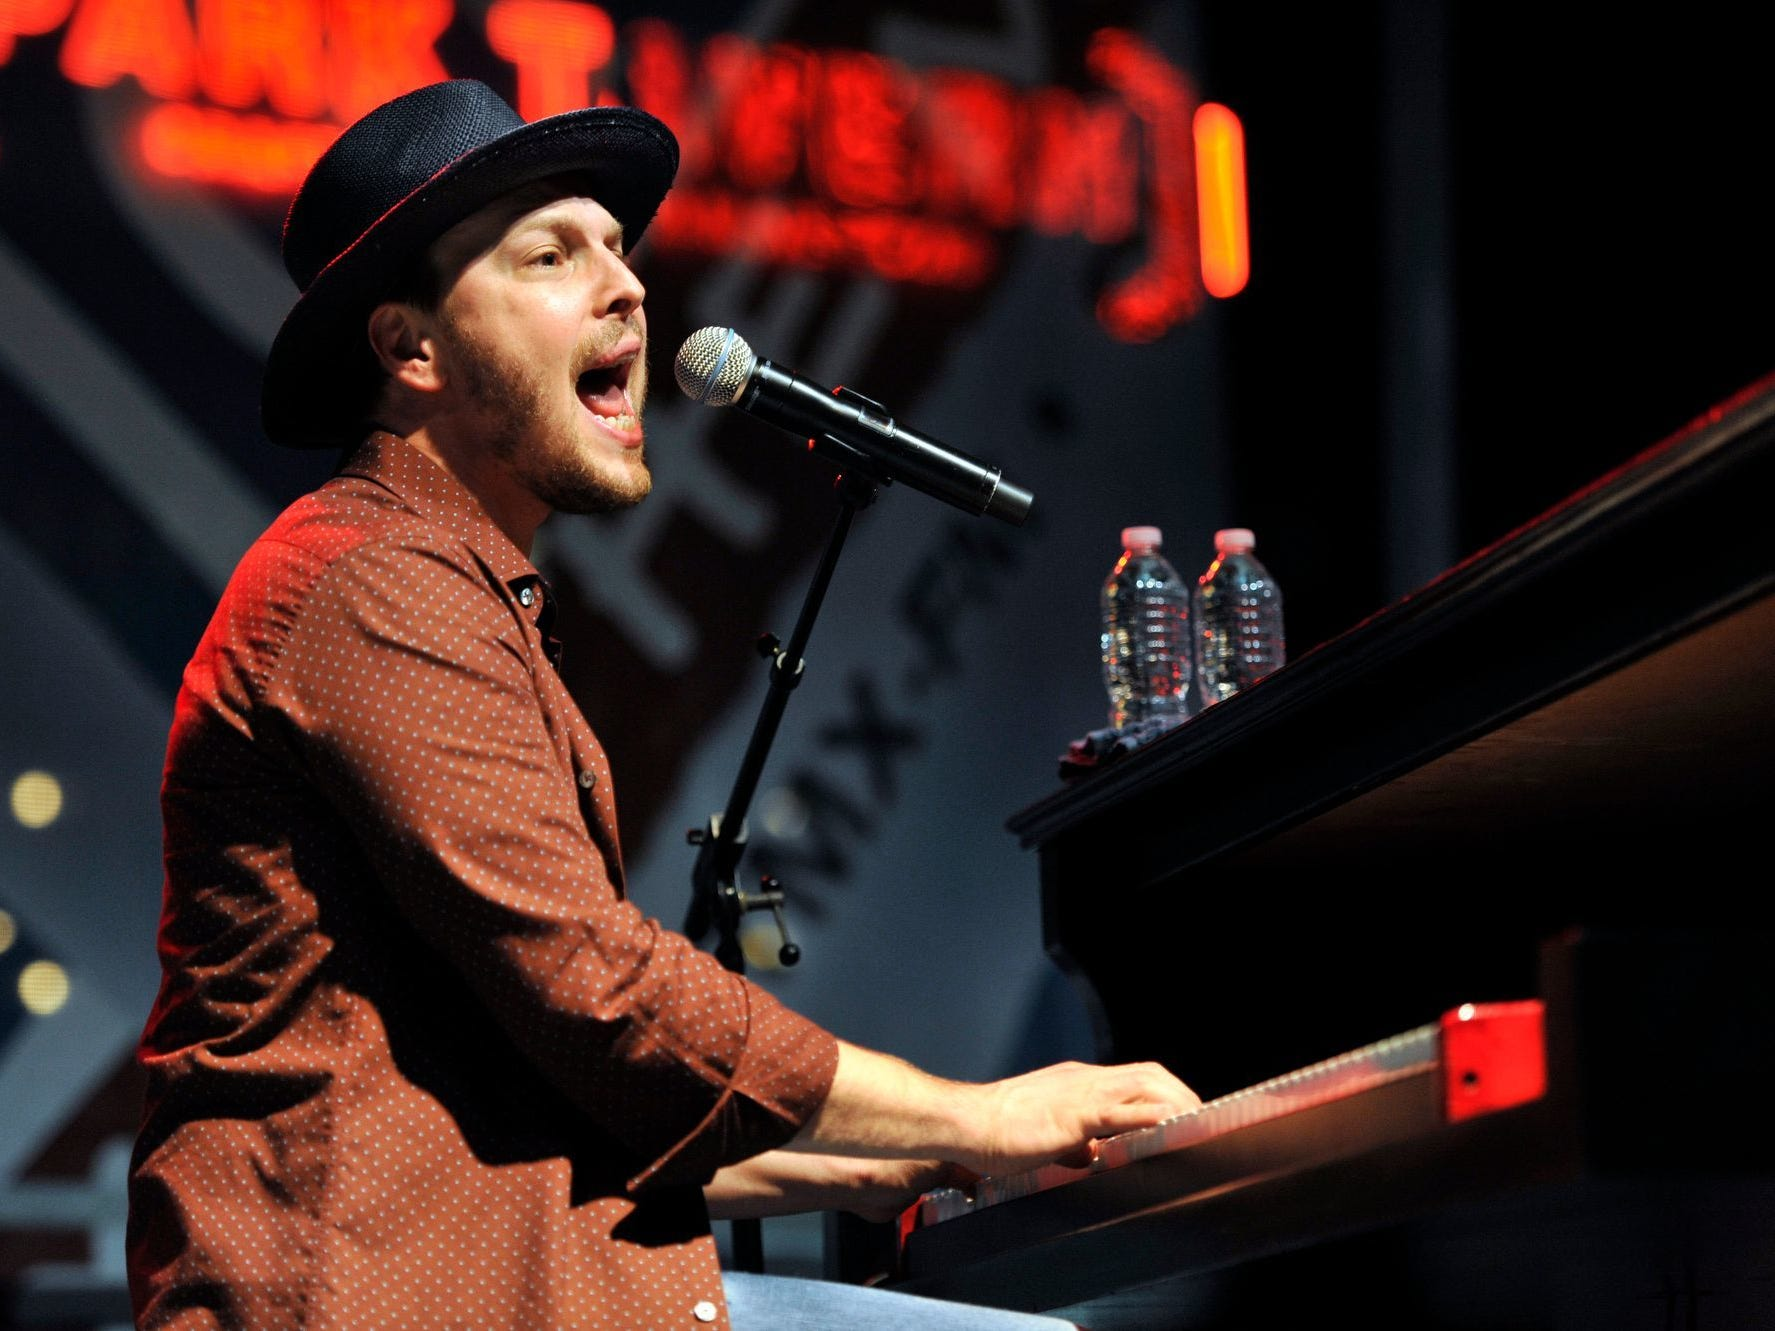 Gavin DeGraw is scheduled to play the Chevy Riverfront Stage at CMA Fest 2019.